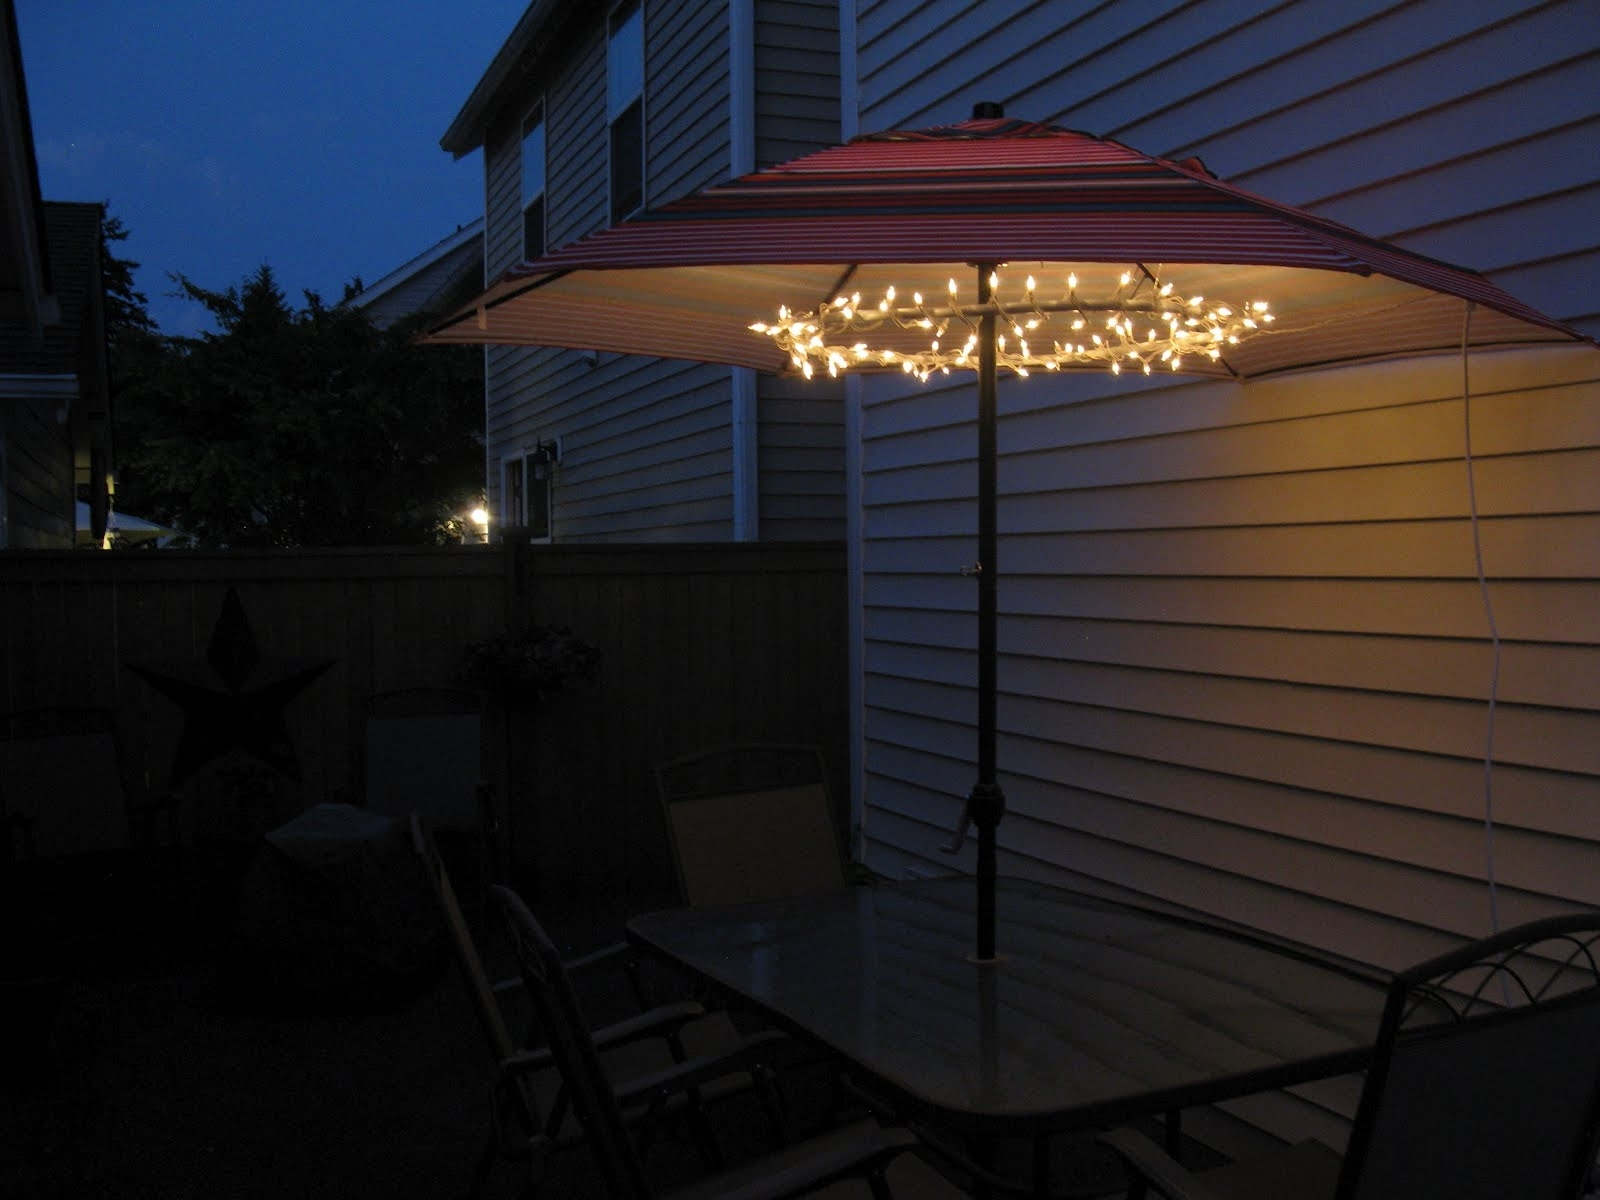 Patio Umbrellas With Lights With Regard To Most Current Great Patio Umbrellas With Lights Patio Umbrella Lights For The (View 14 of 20)